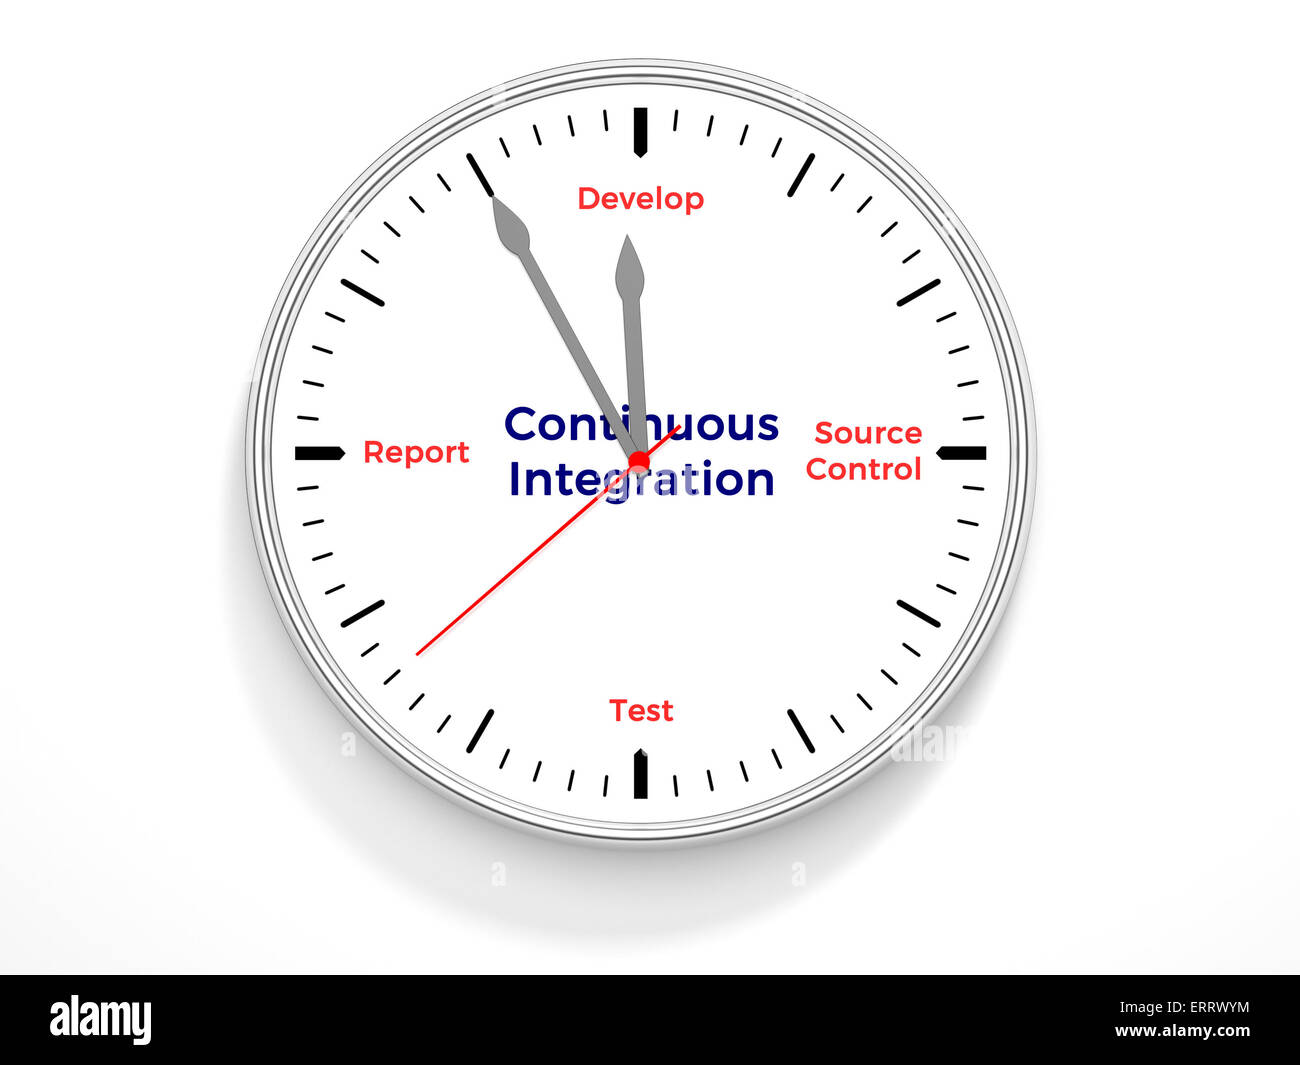 A clock containing the life cycle of continuous integration. - Stock Image